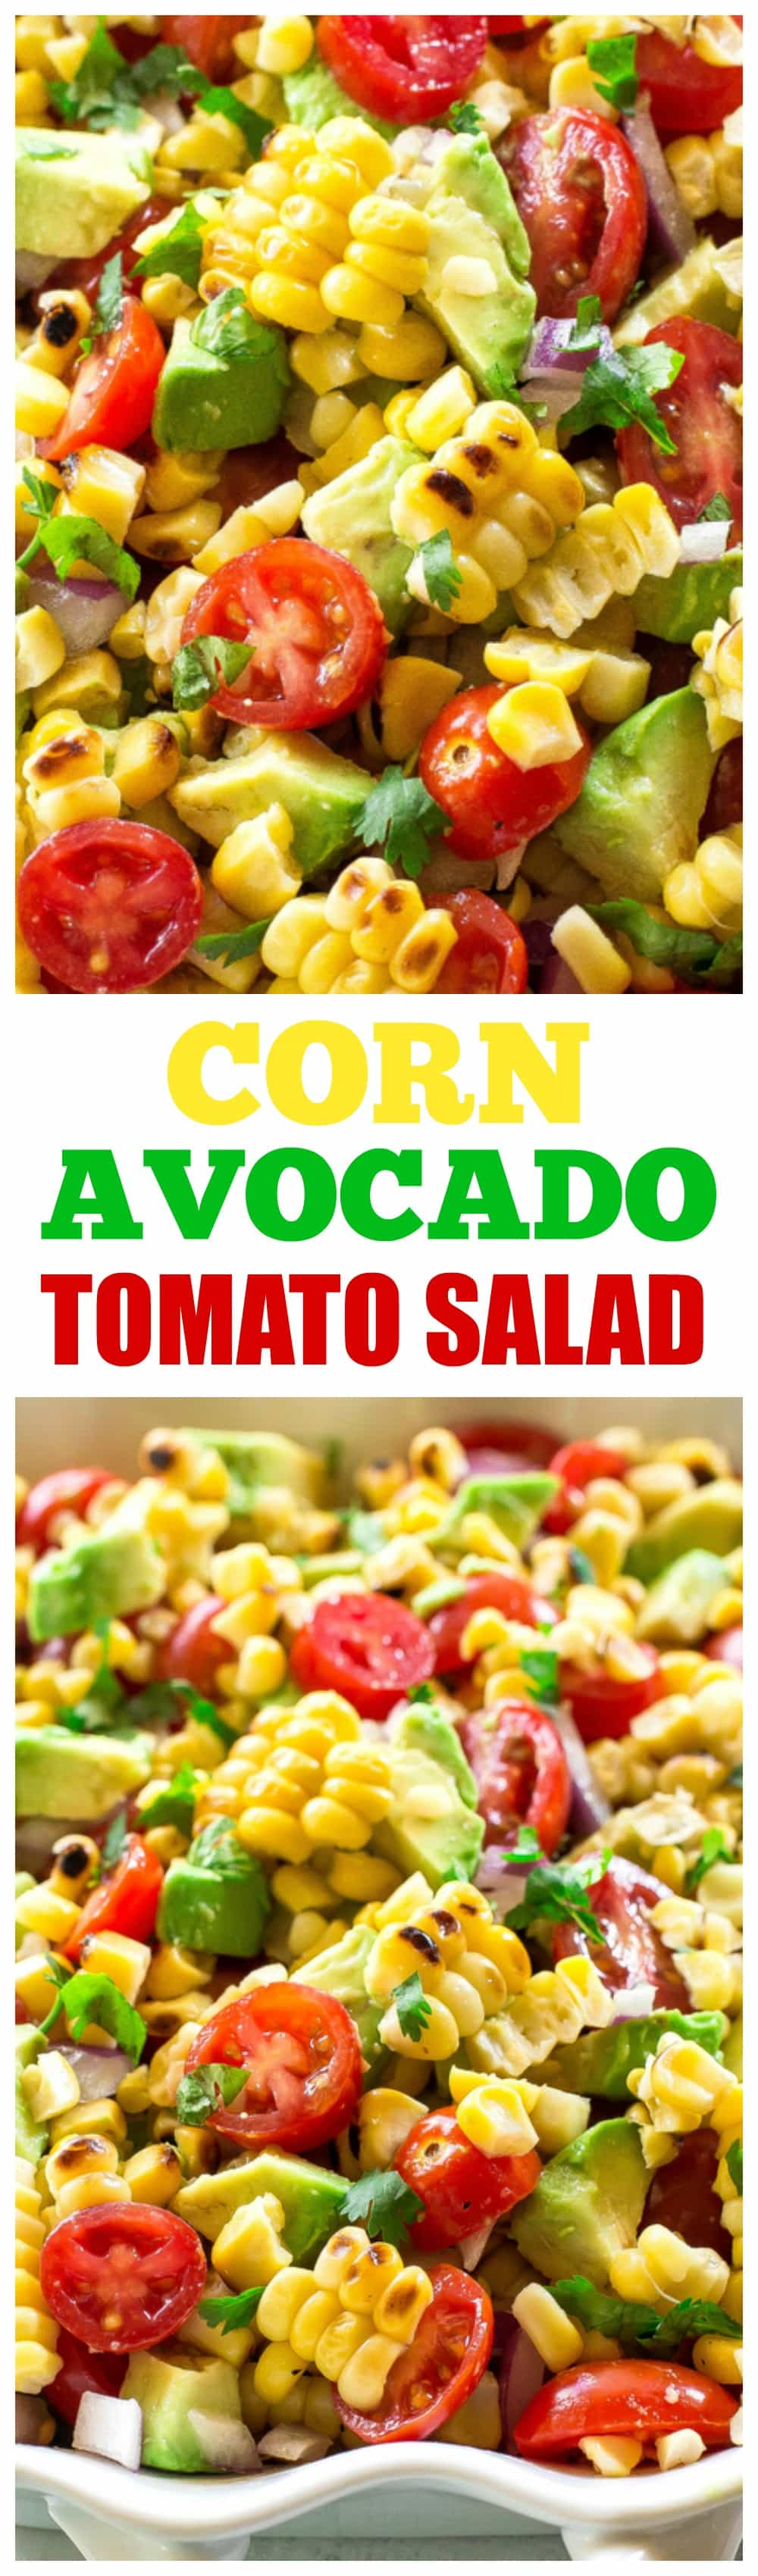 Corn, Avocado, and Tomato Salad - a healthy and light salad perfect for BBQs and get togethers. This BBQ side dish is always a hit! the-girl-who-ate-everything.com